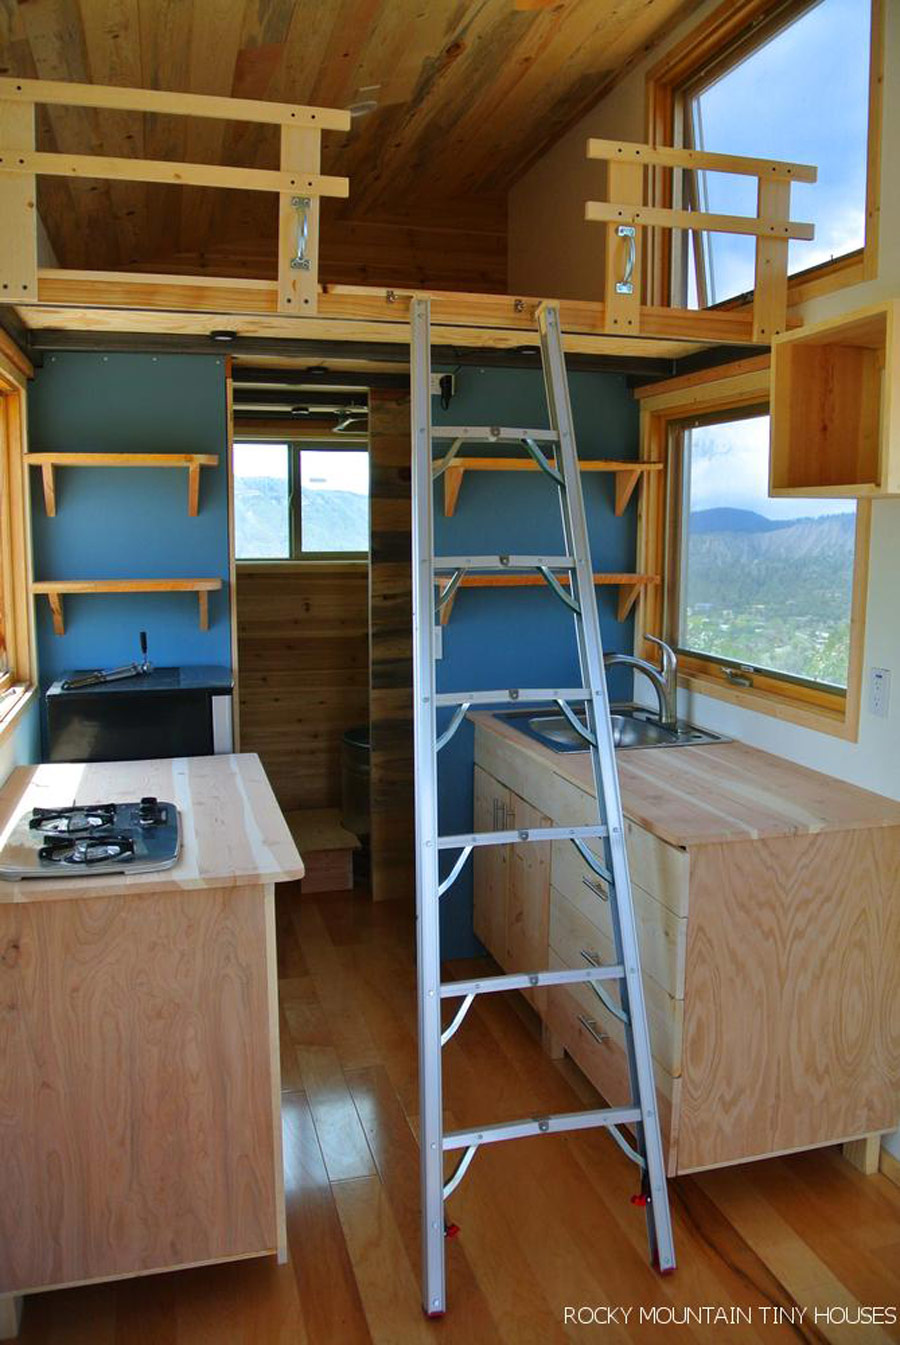 front-range-rocky-mountain-tiny-houses-3